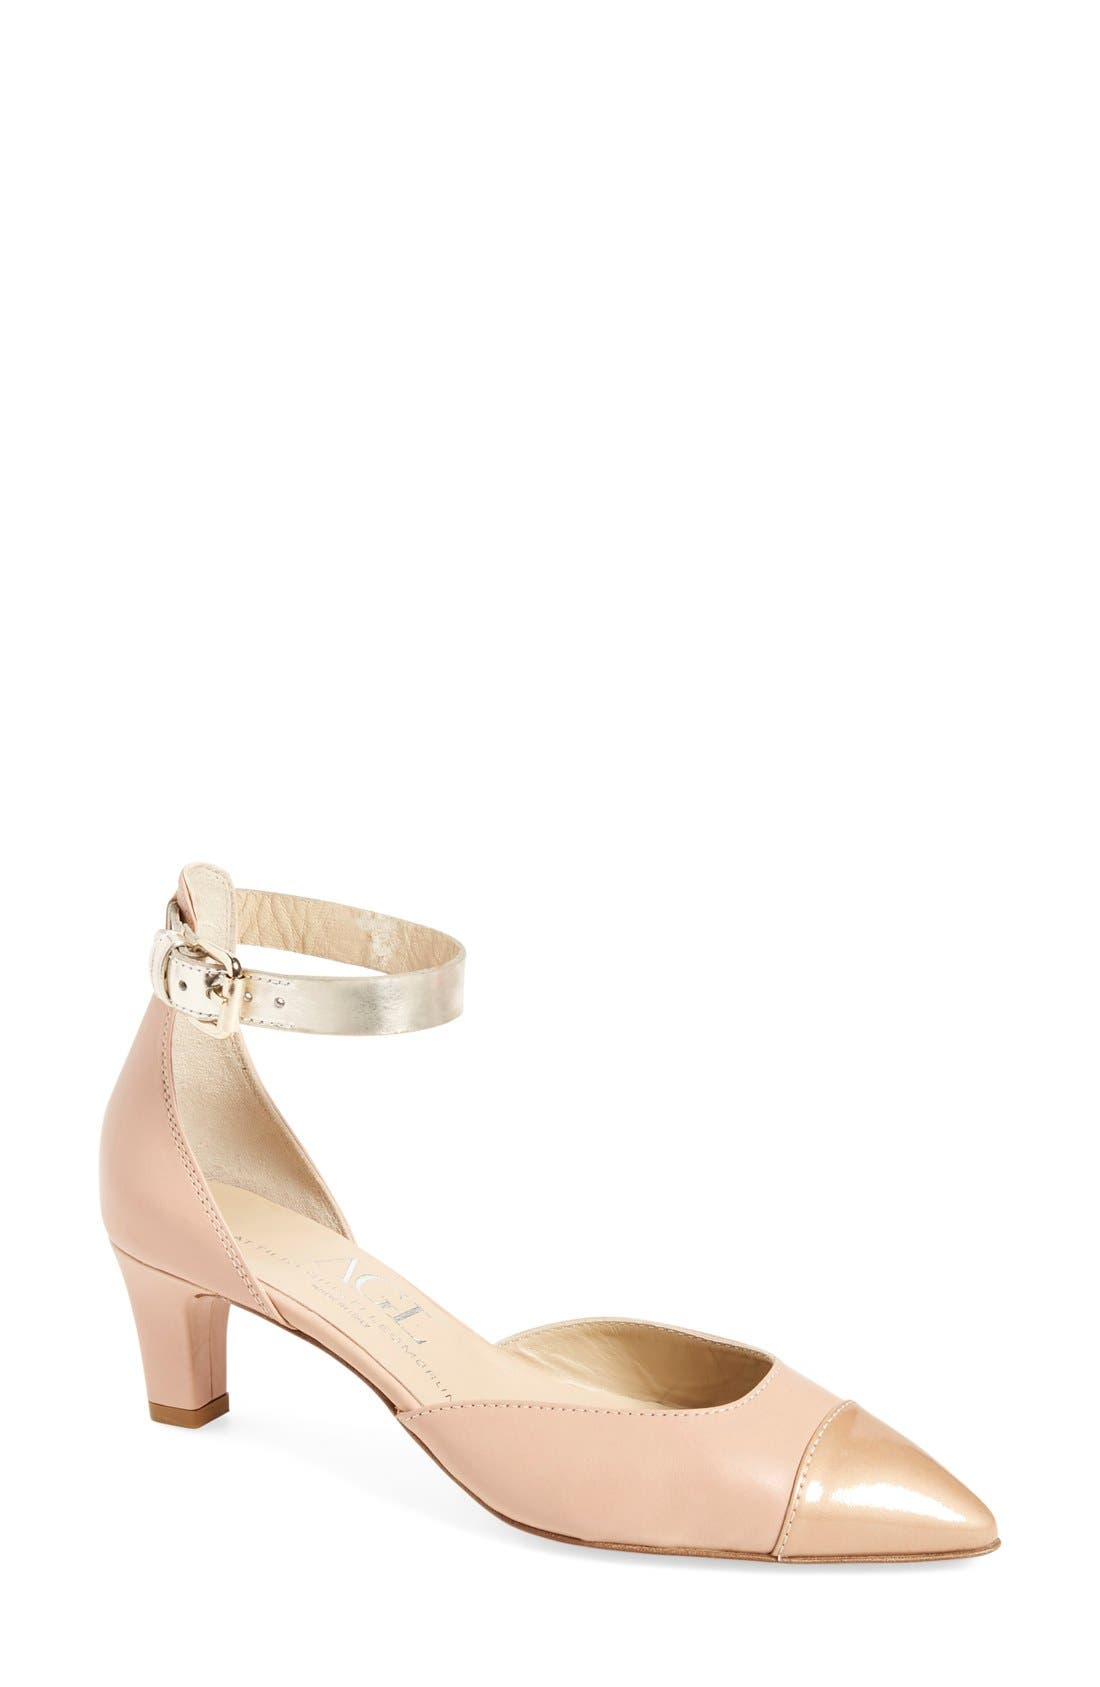 Alternate Image 1 Selected - AGL 'Claire' Ankle-Strap Pump (Women)